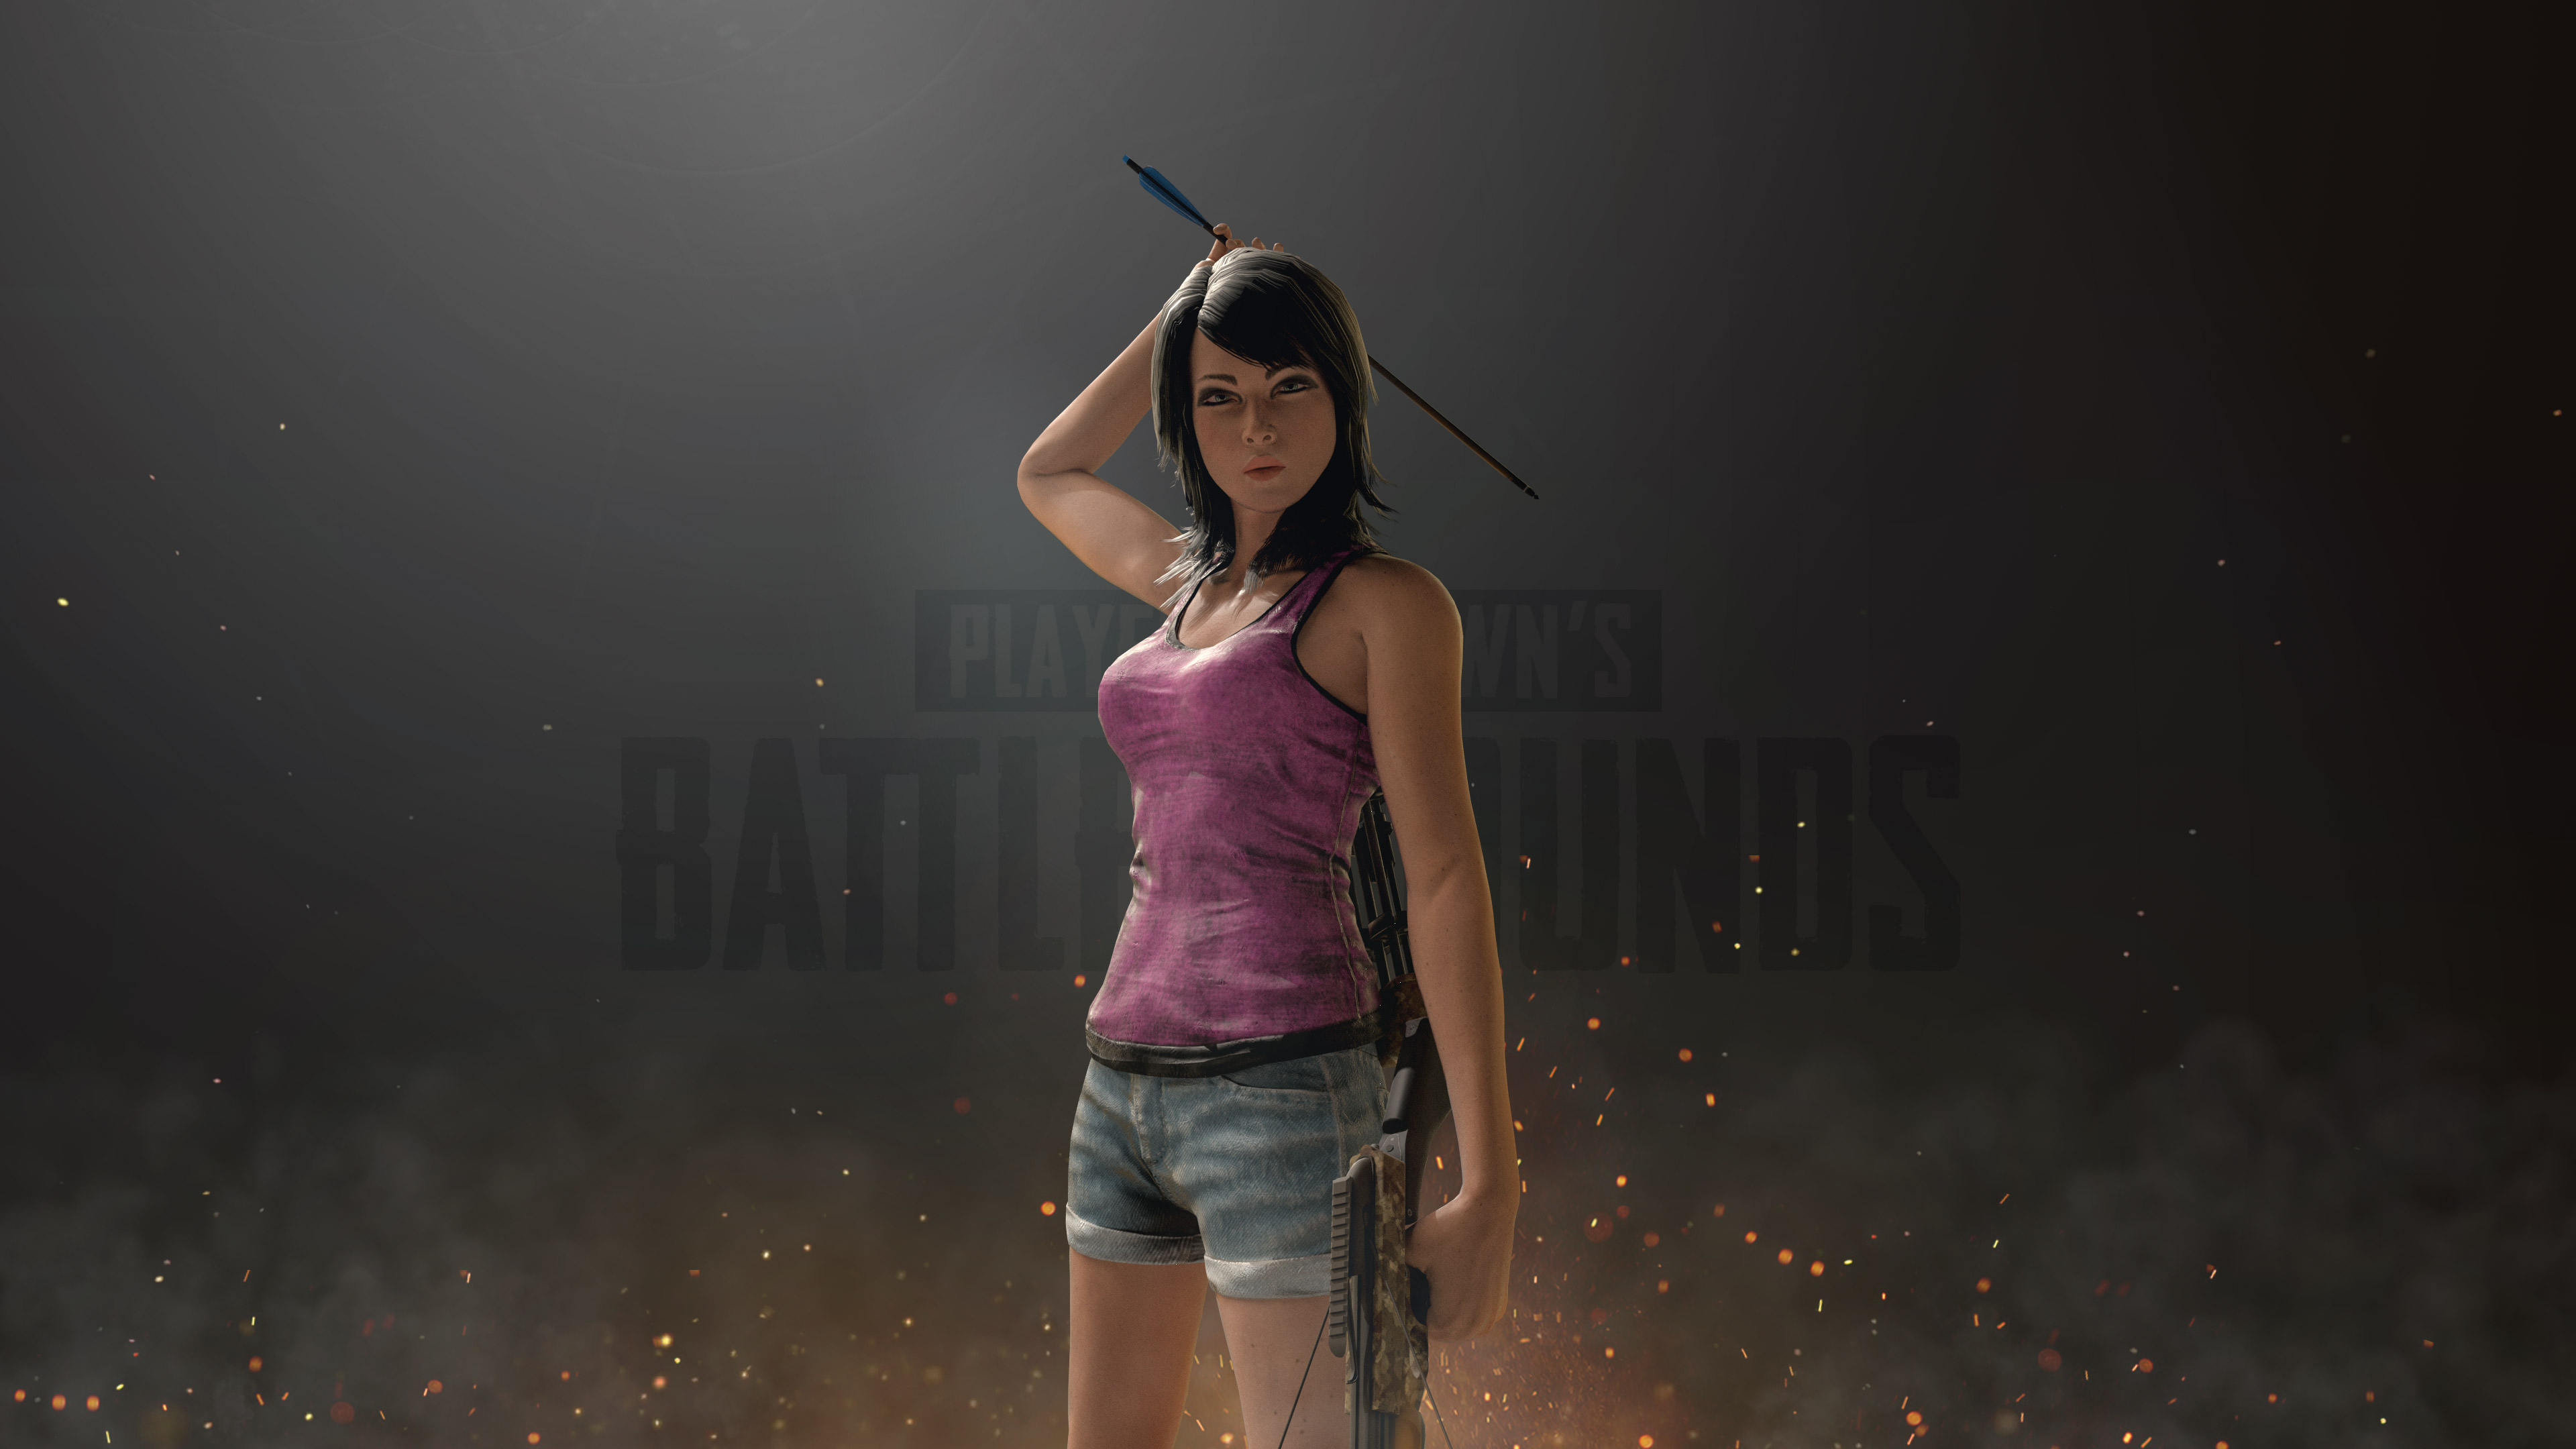 Pubg Mobile Girl Hd Games 4k Wallpapers Images Backgrounds